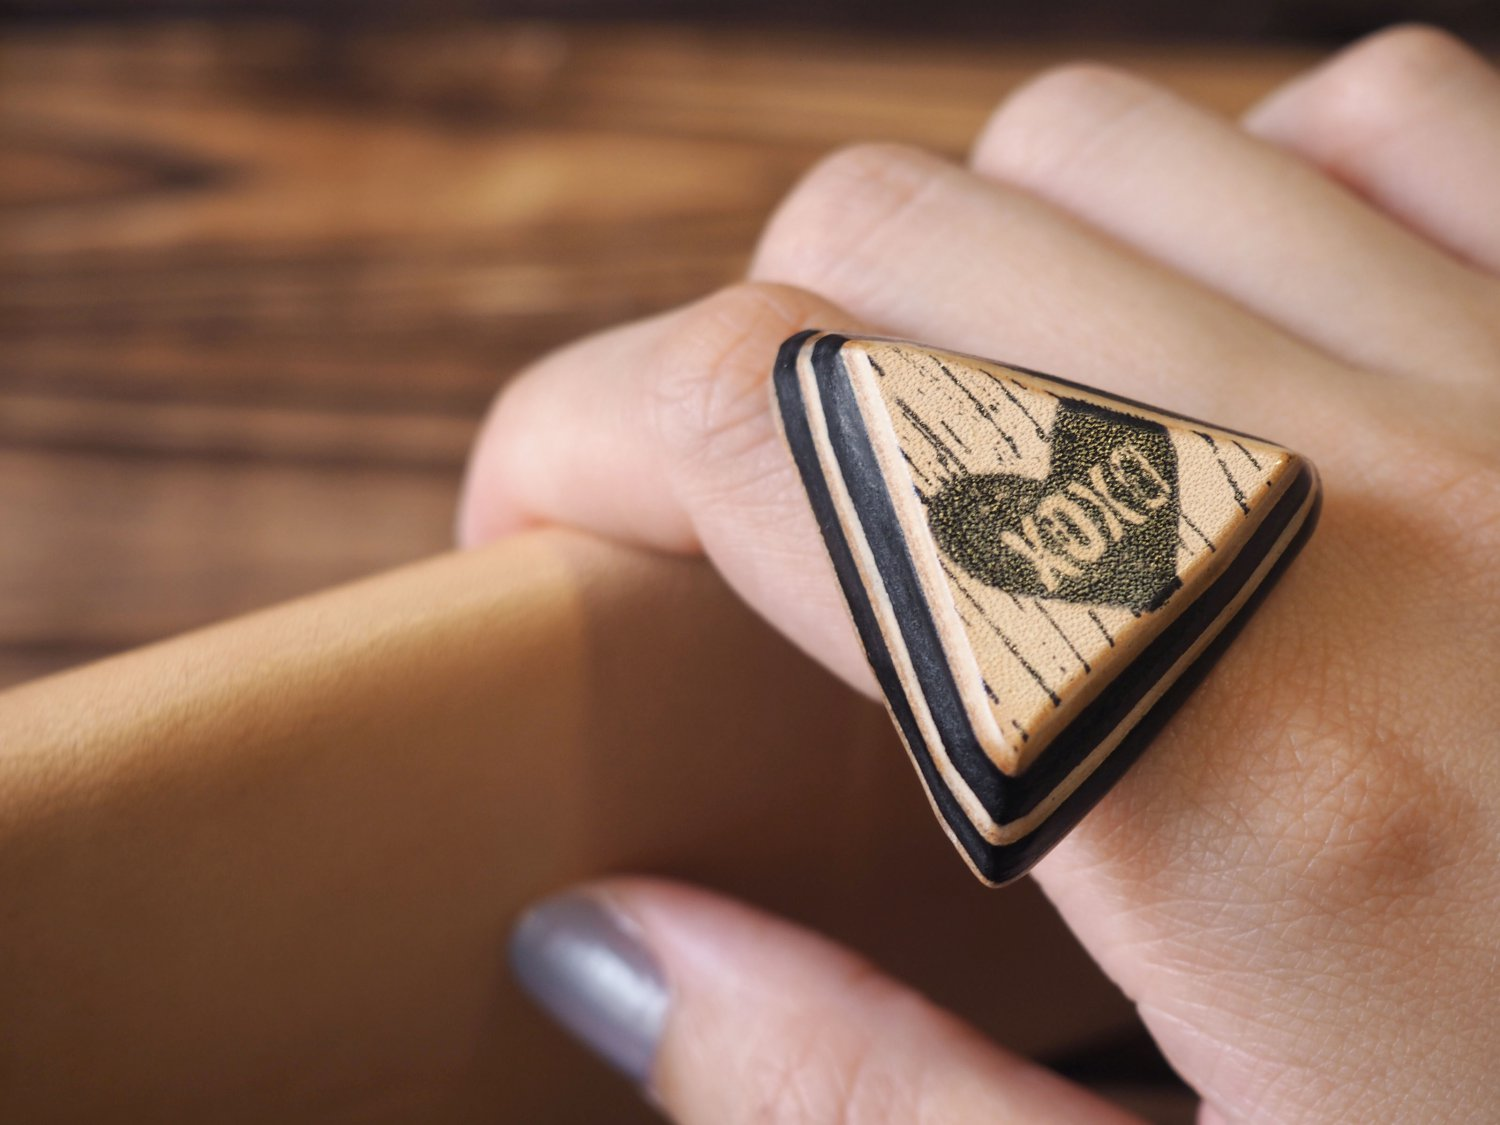 Handmade Leather XOXO Rings Hugs and Kisses Ring Triangle Funny gifts Personalized gifts #Black